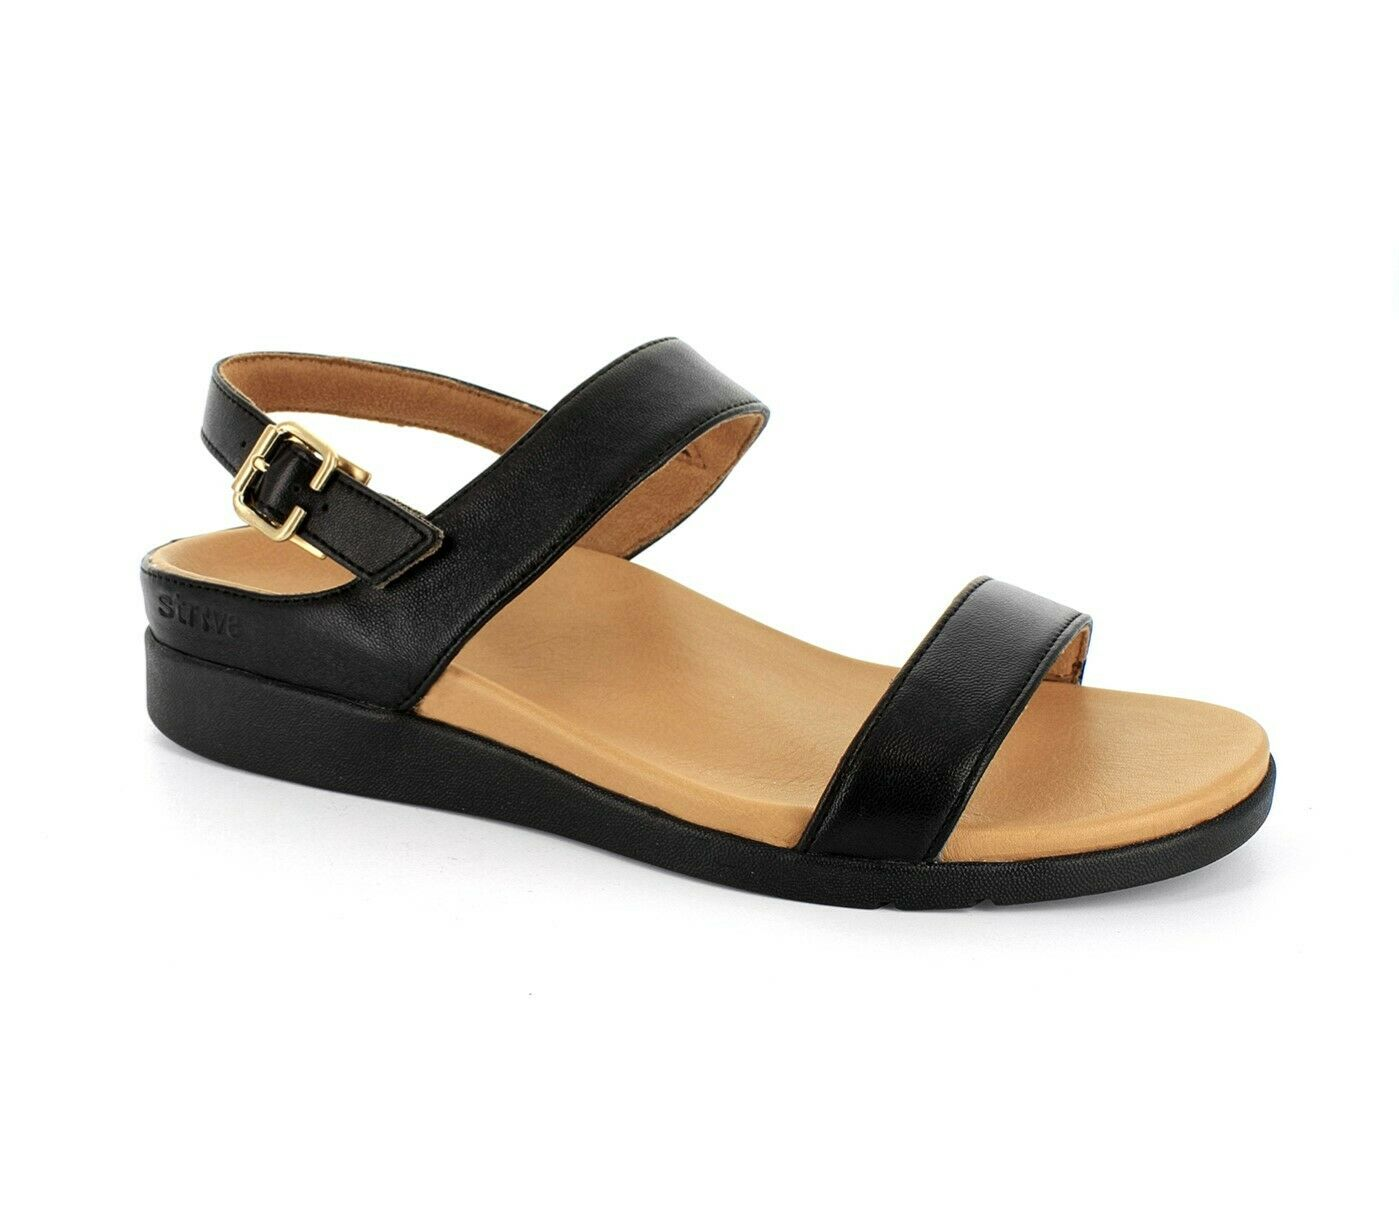 Strive Lucia Women's Comfortable And Arch Supportive Sandals Black - 9 Medium